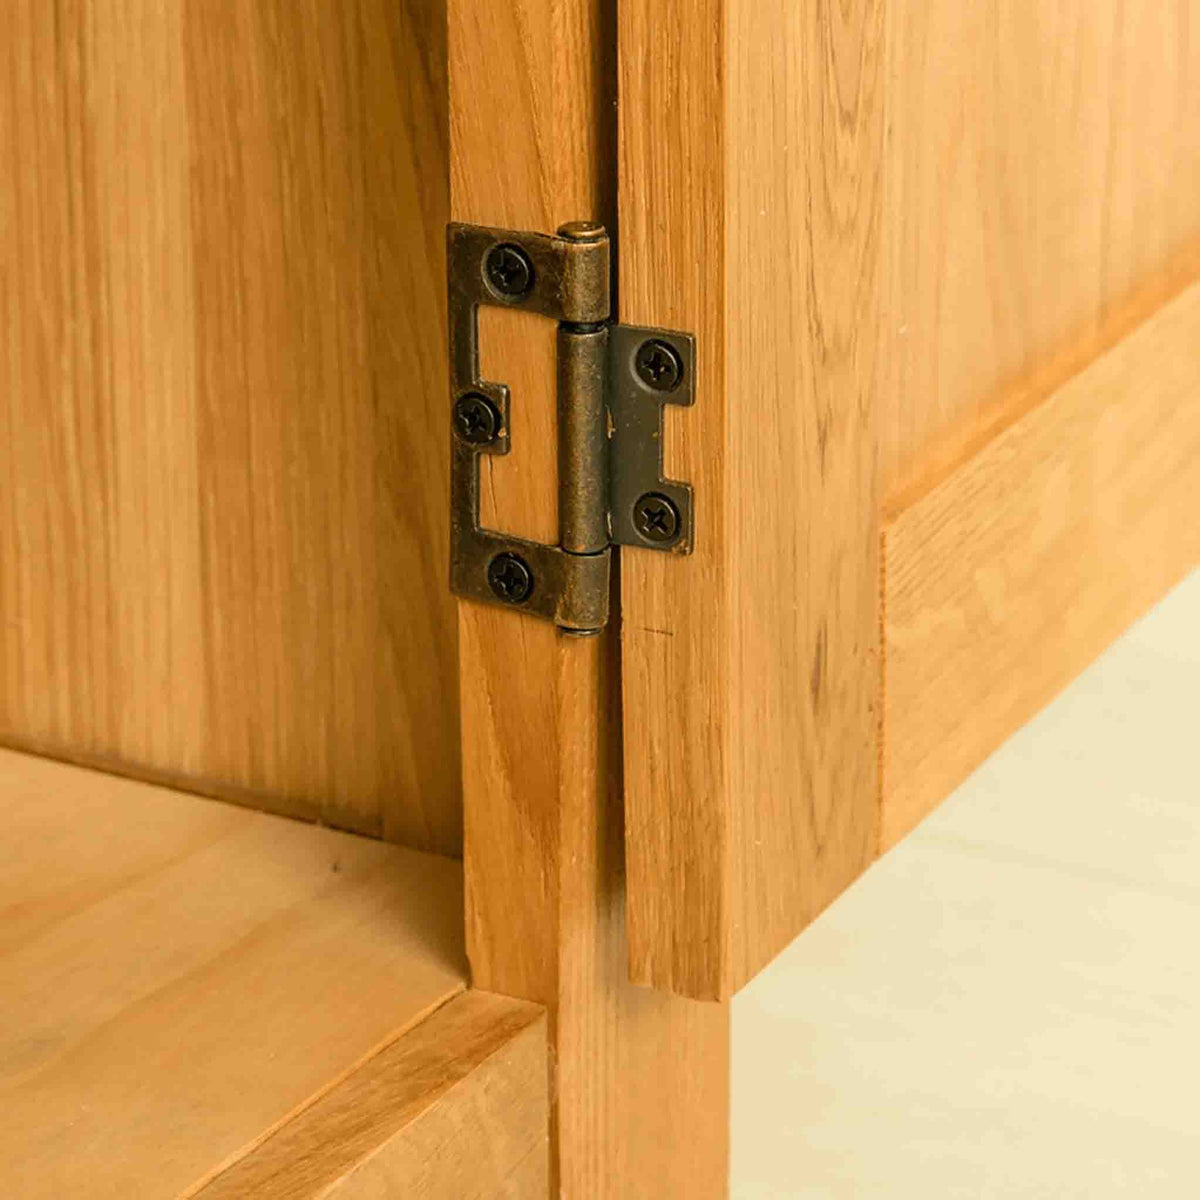 Hinge view on The Abbey Waxed Oak Large Sideboard 3 Door Cabinet